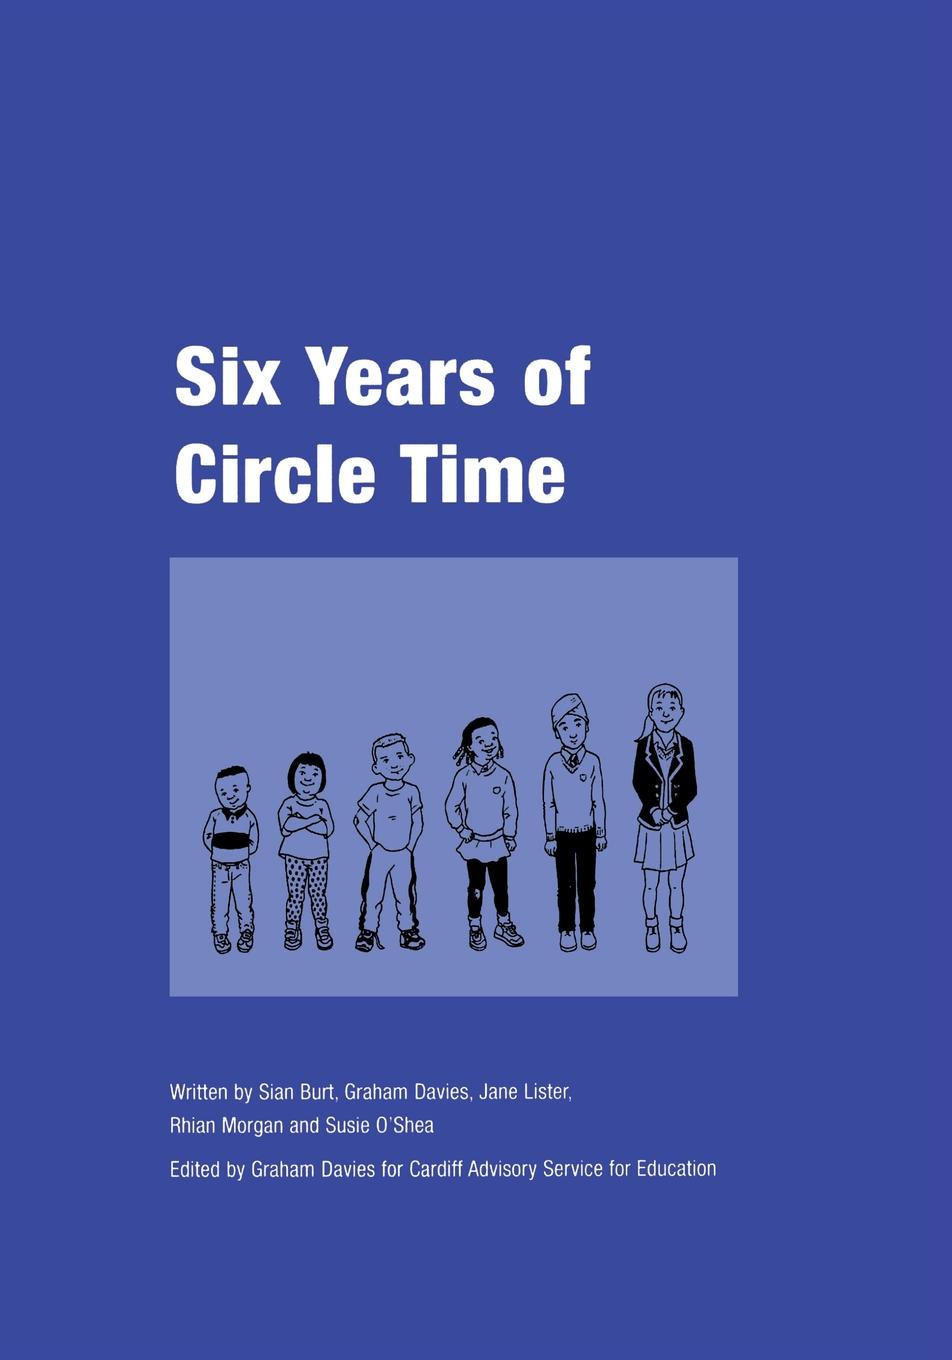 Sian Burt, Graham Davies, Jane Lister Six Years of Circle Time. A Developmental Primary Curriculum - Produced by a Group of Teachers in Cardiff